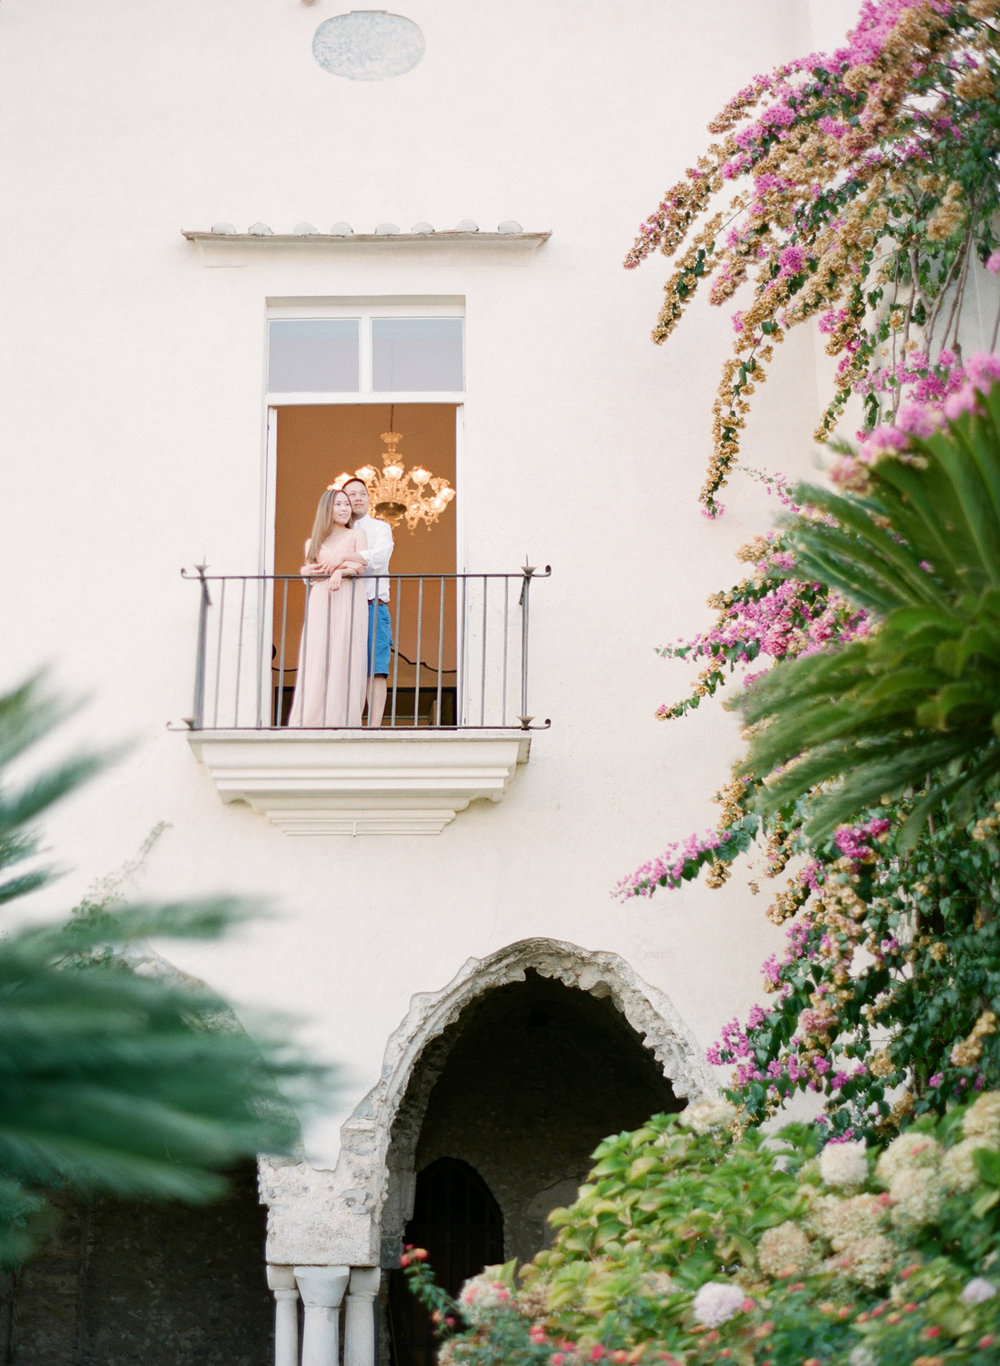 ravello wedding photographer amalfi coast wedding nikol bodnarova film wedding photographer_26.JPG